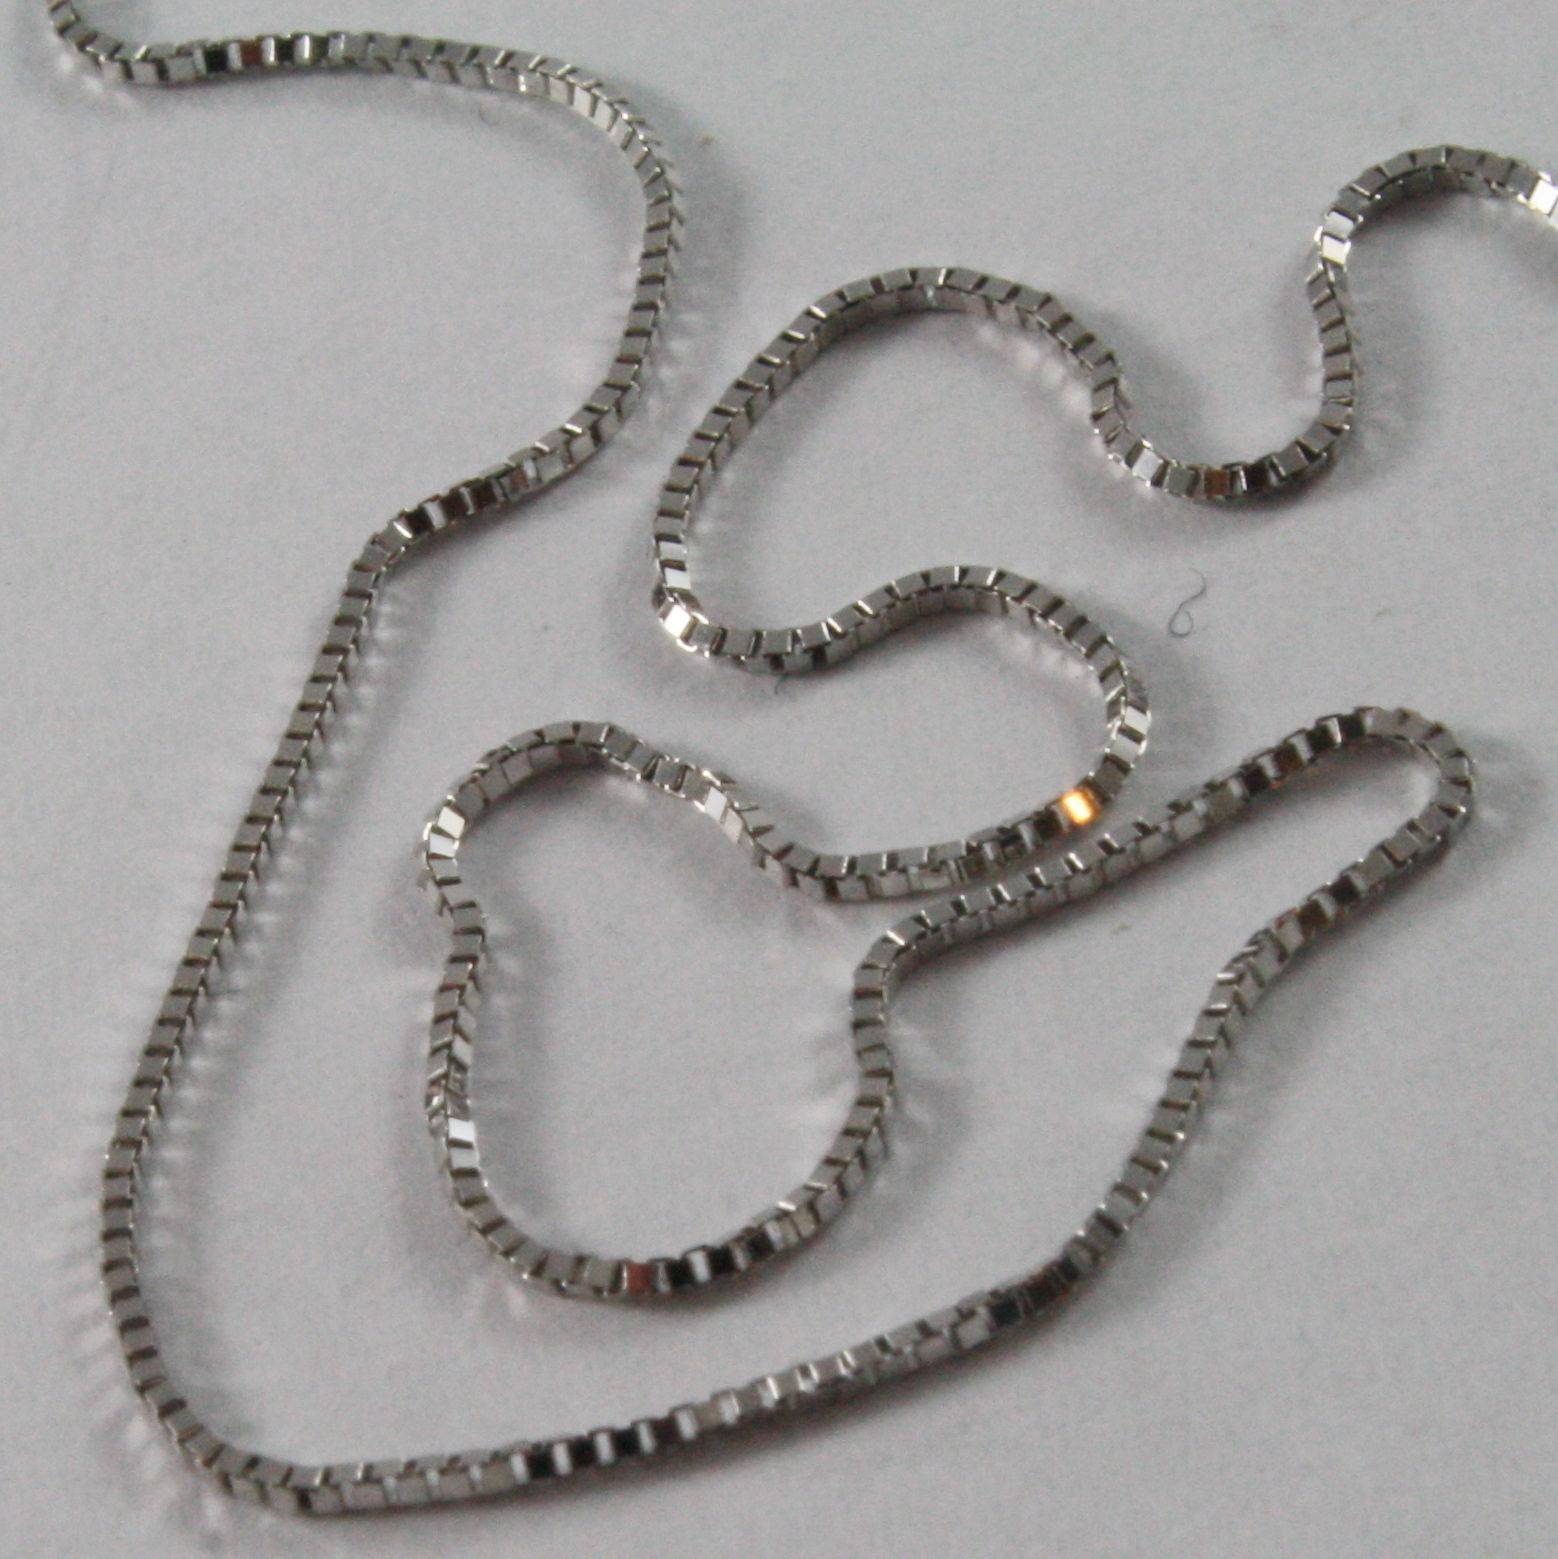 MADE IN ITALY 18K WHITE GOLD CHAIN MINI 0.8 MM VENETIAN SQUARE LINK 23.60 INCH